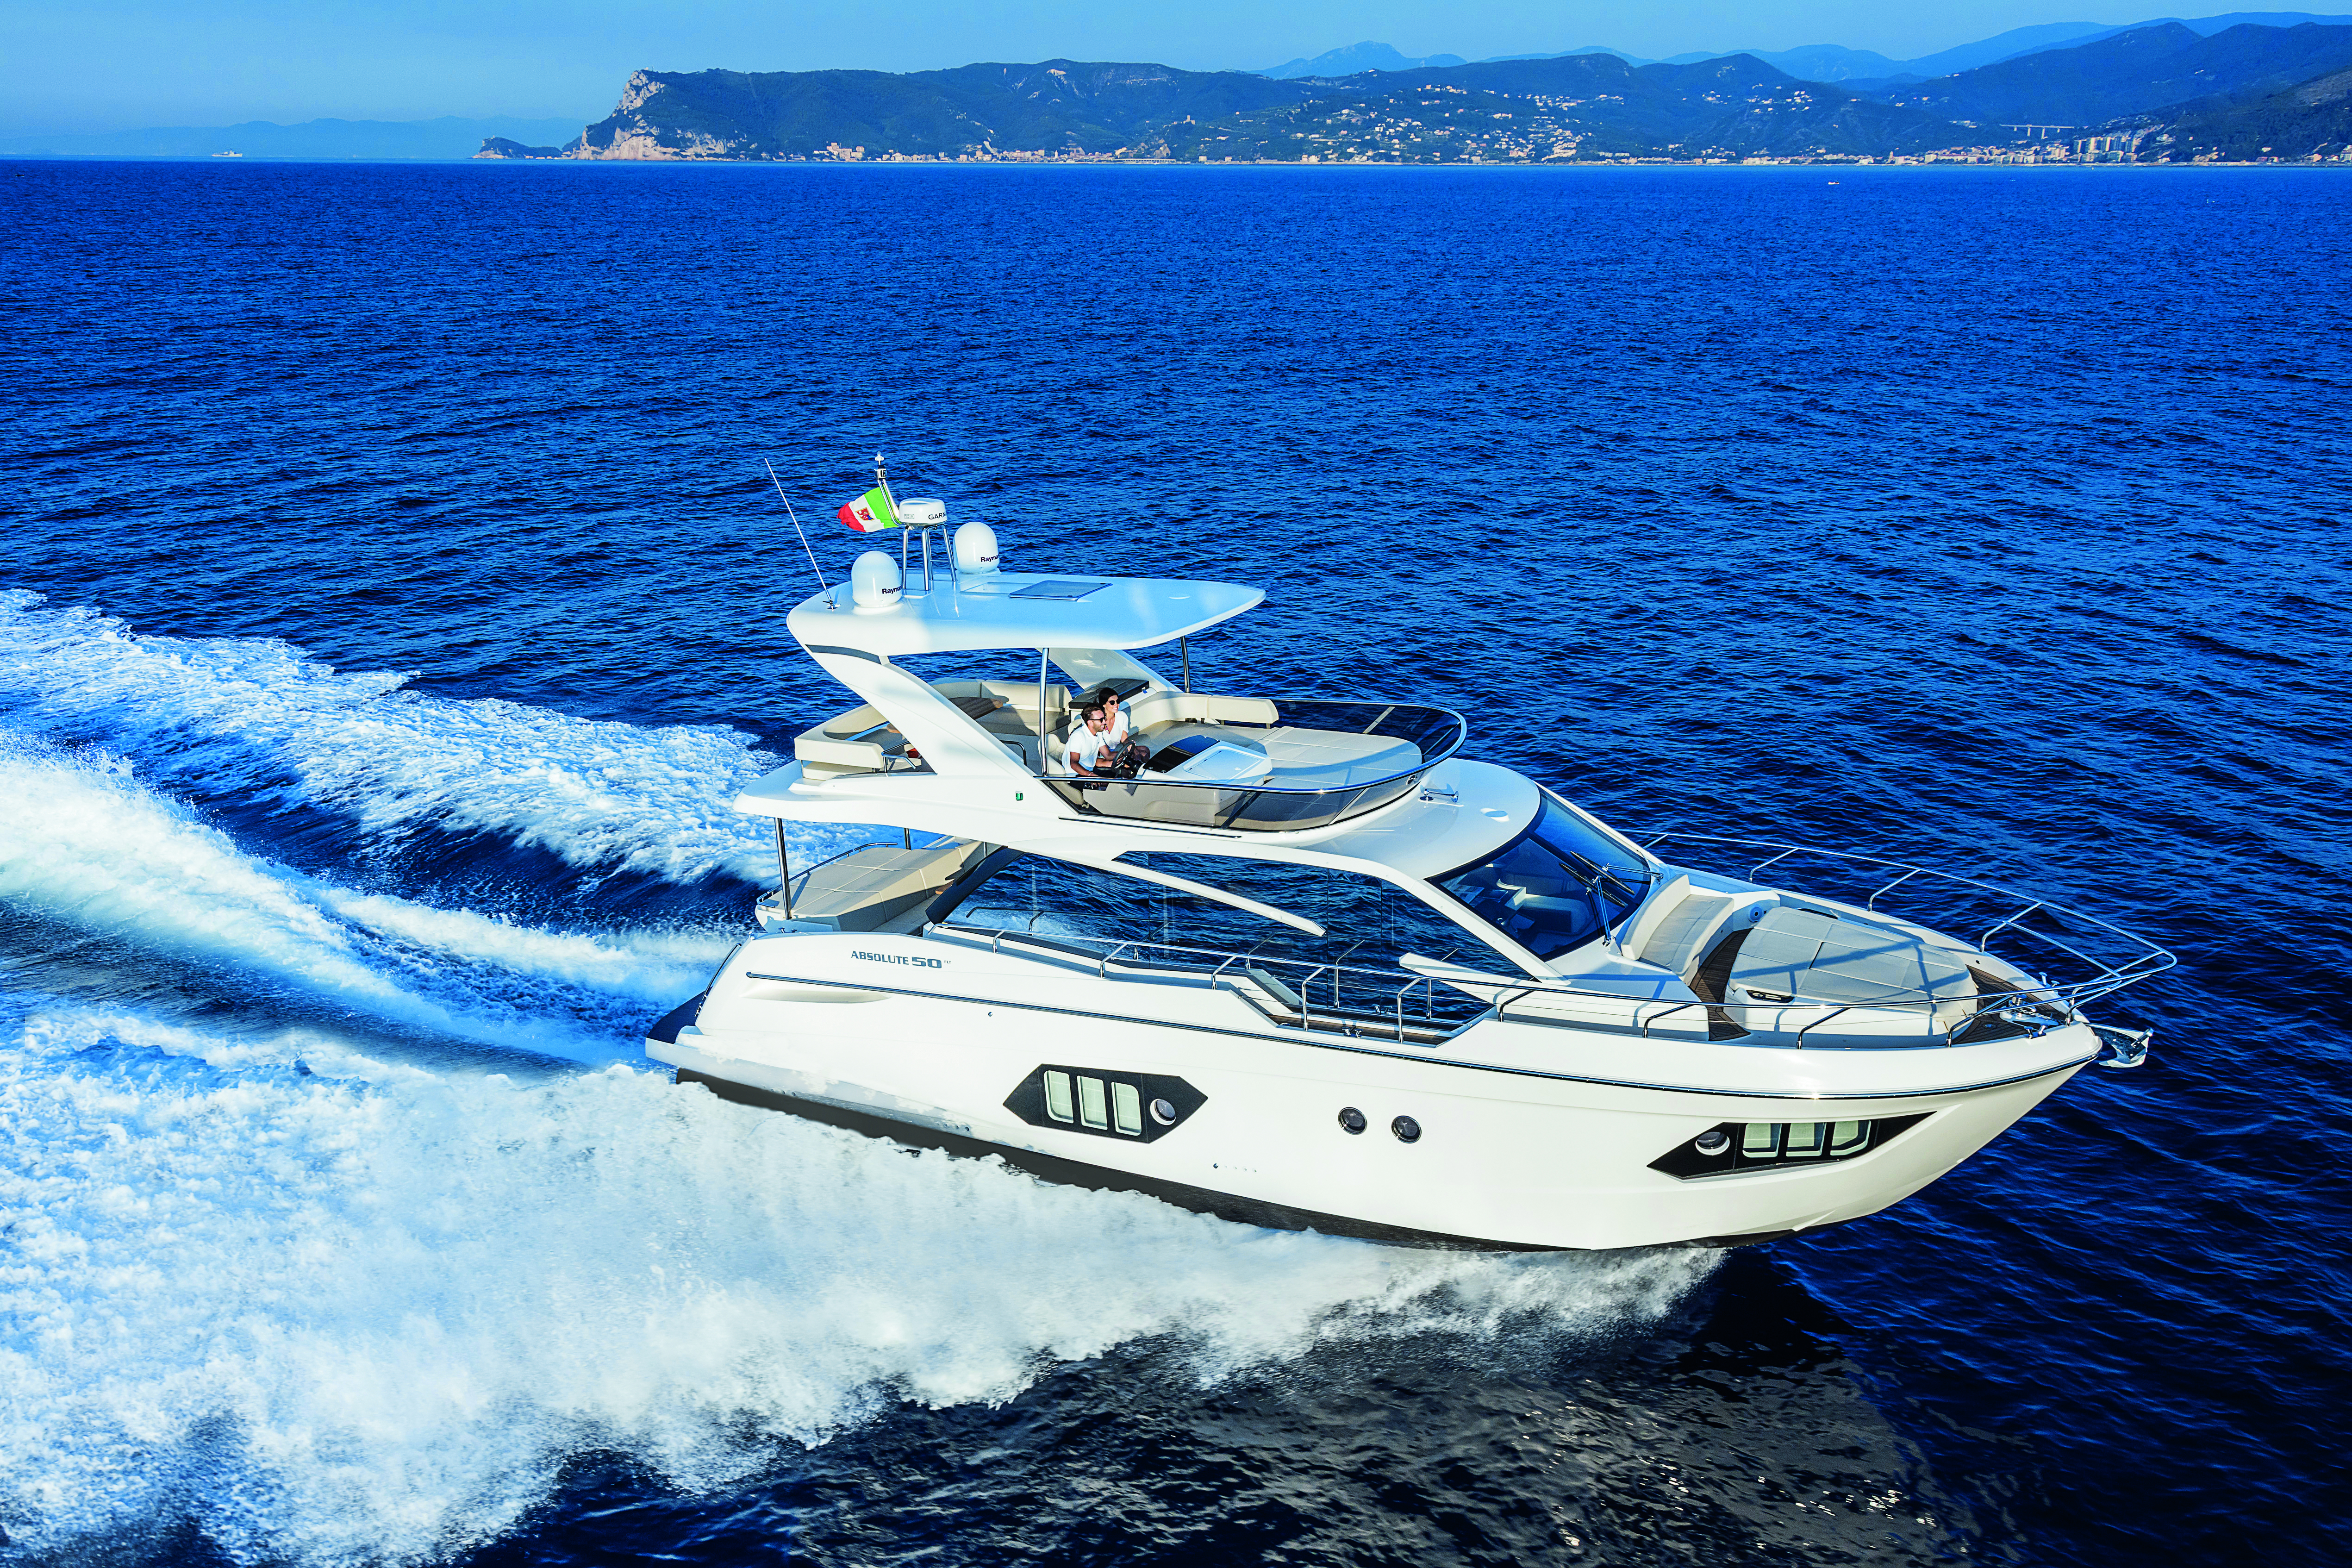 SeaNet Yachts